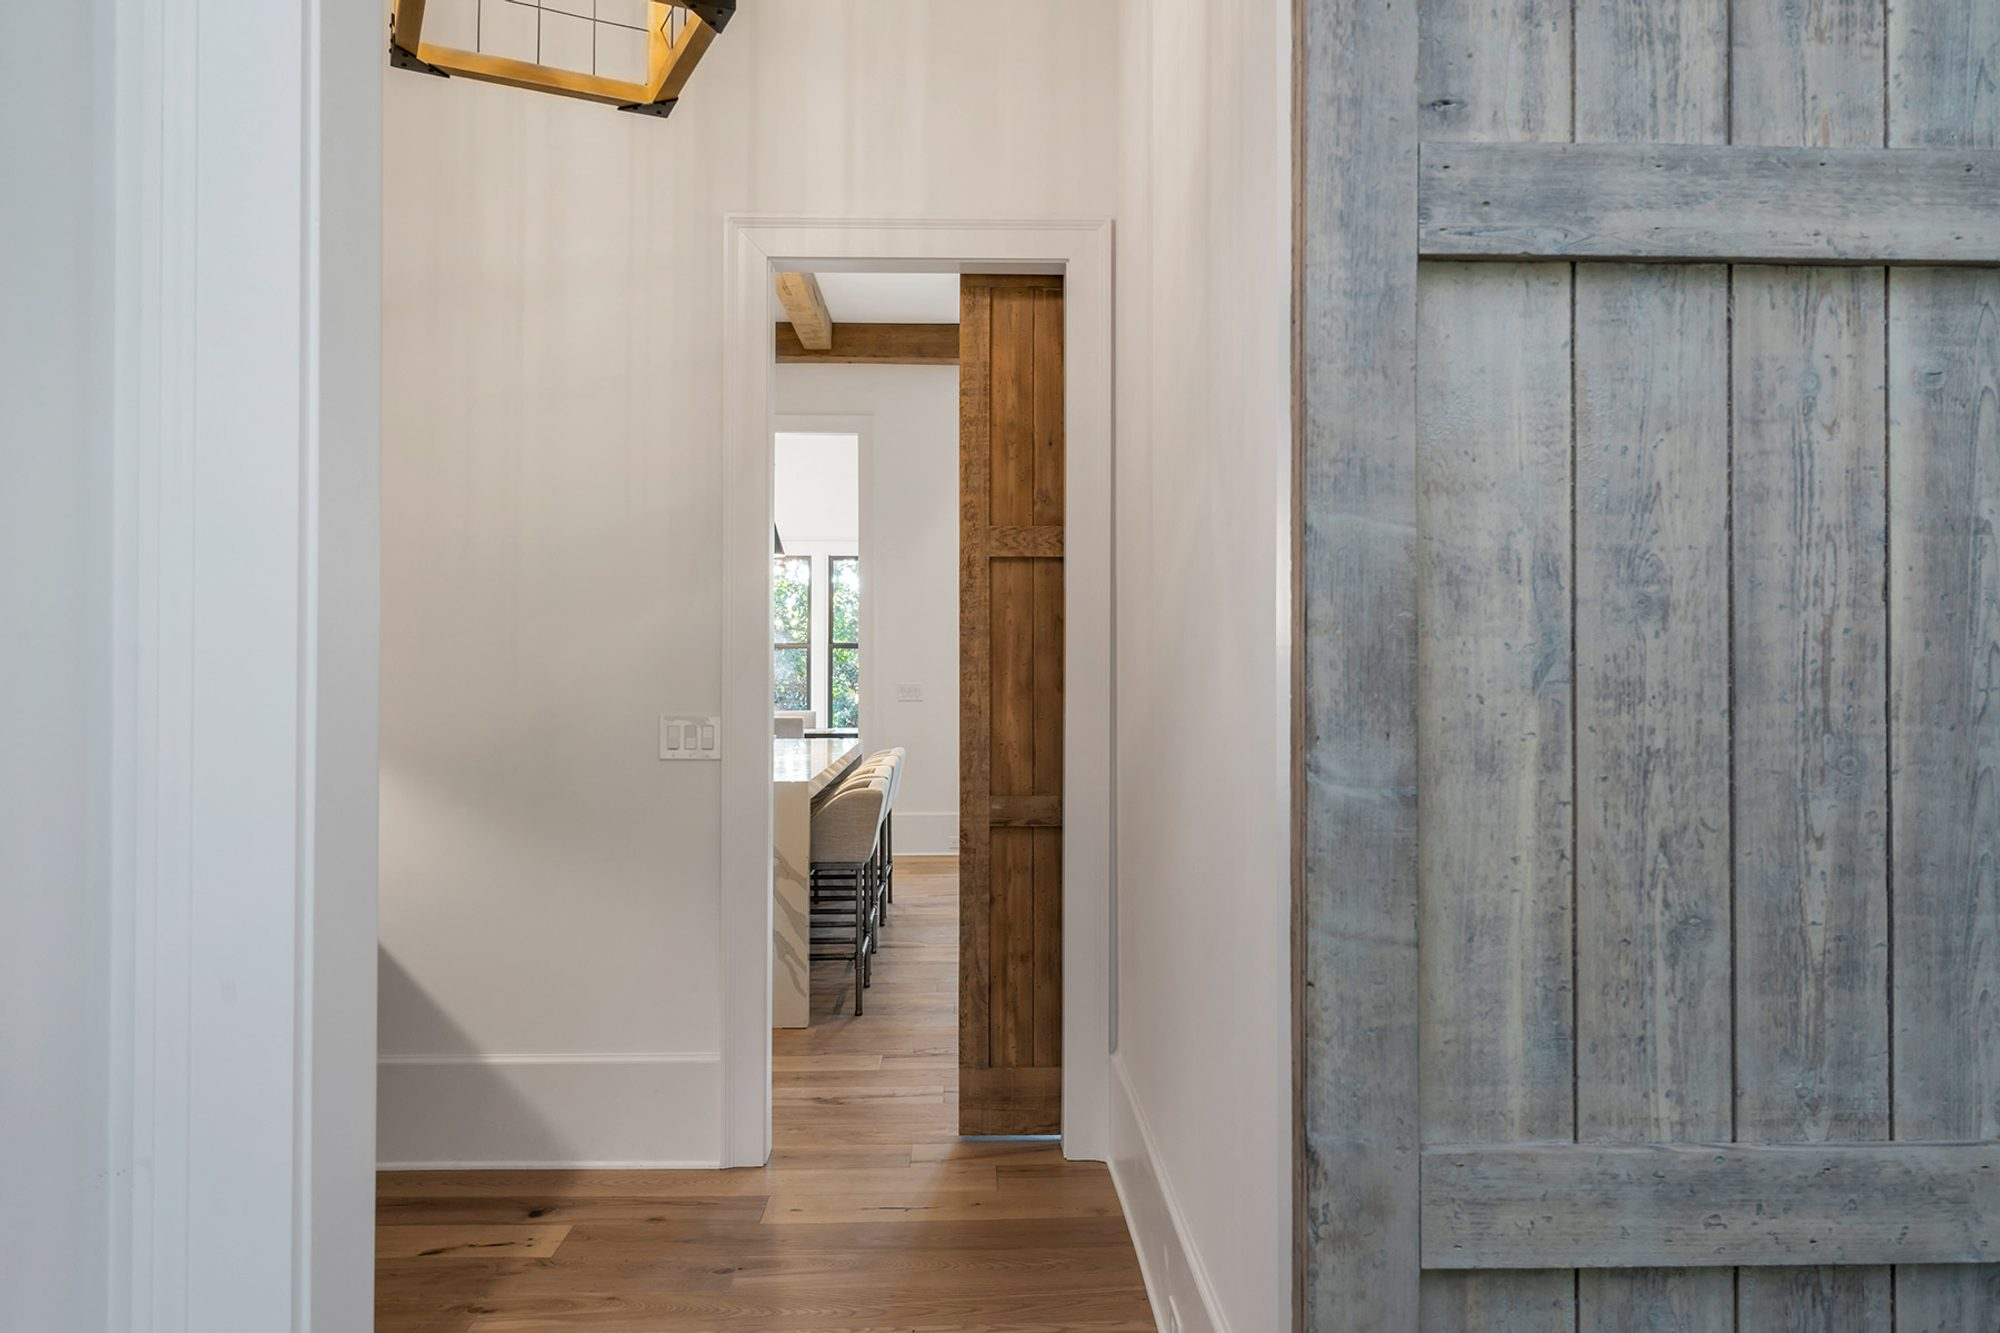 Bleached sliding barn wood doors to match the light and natural wood floors.